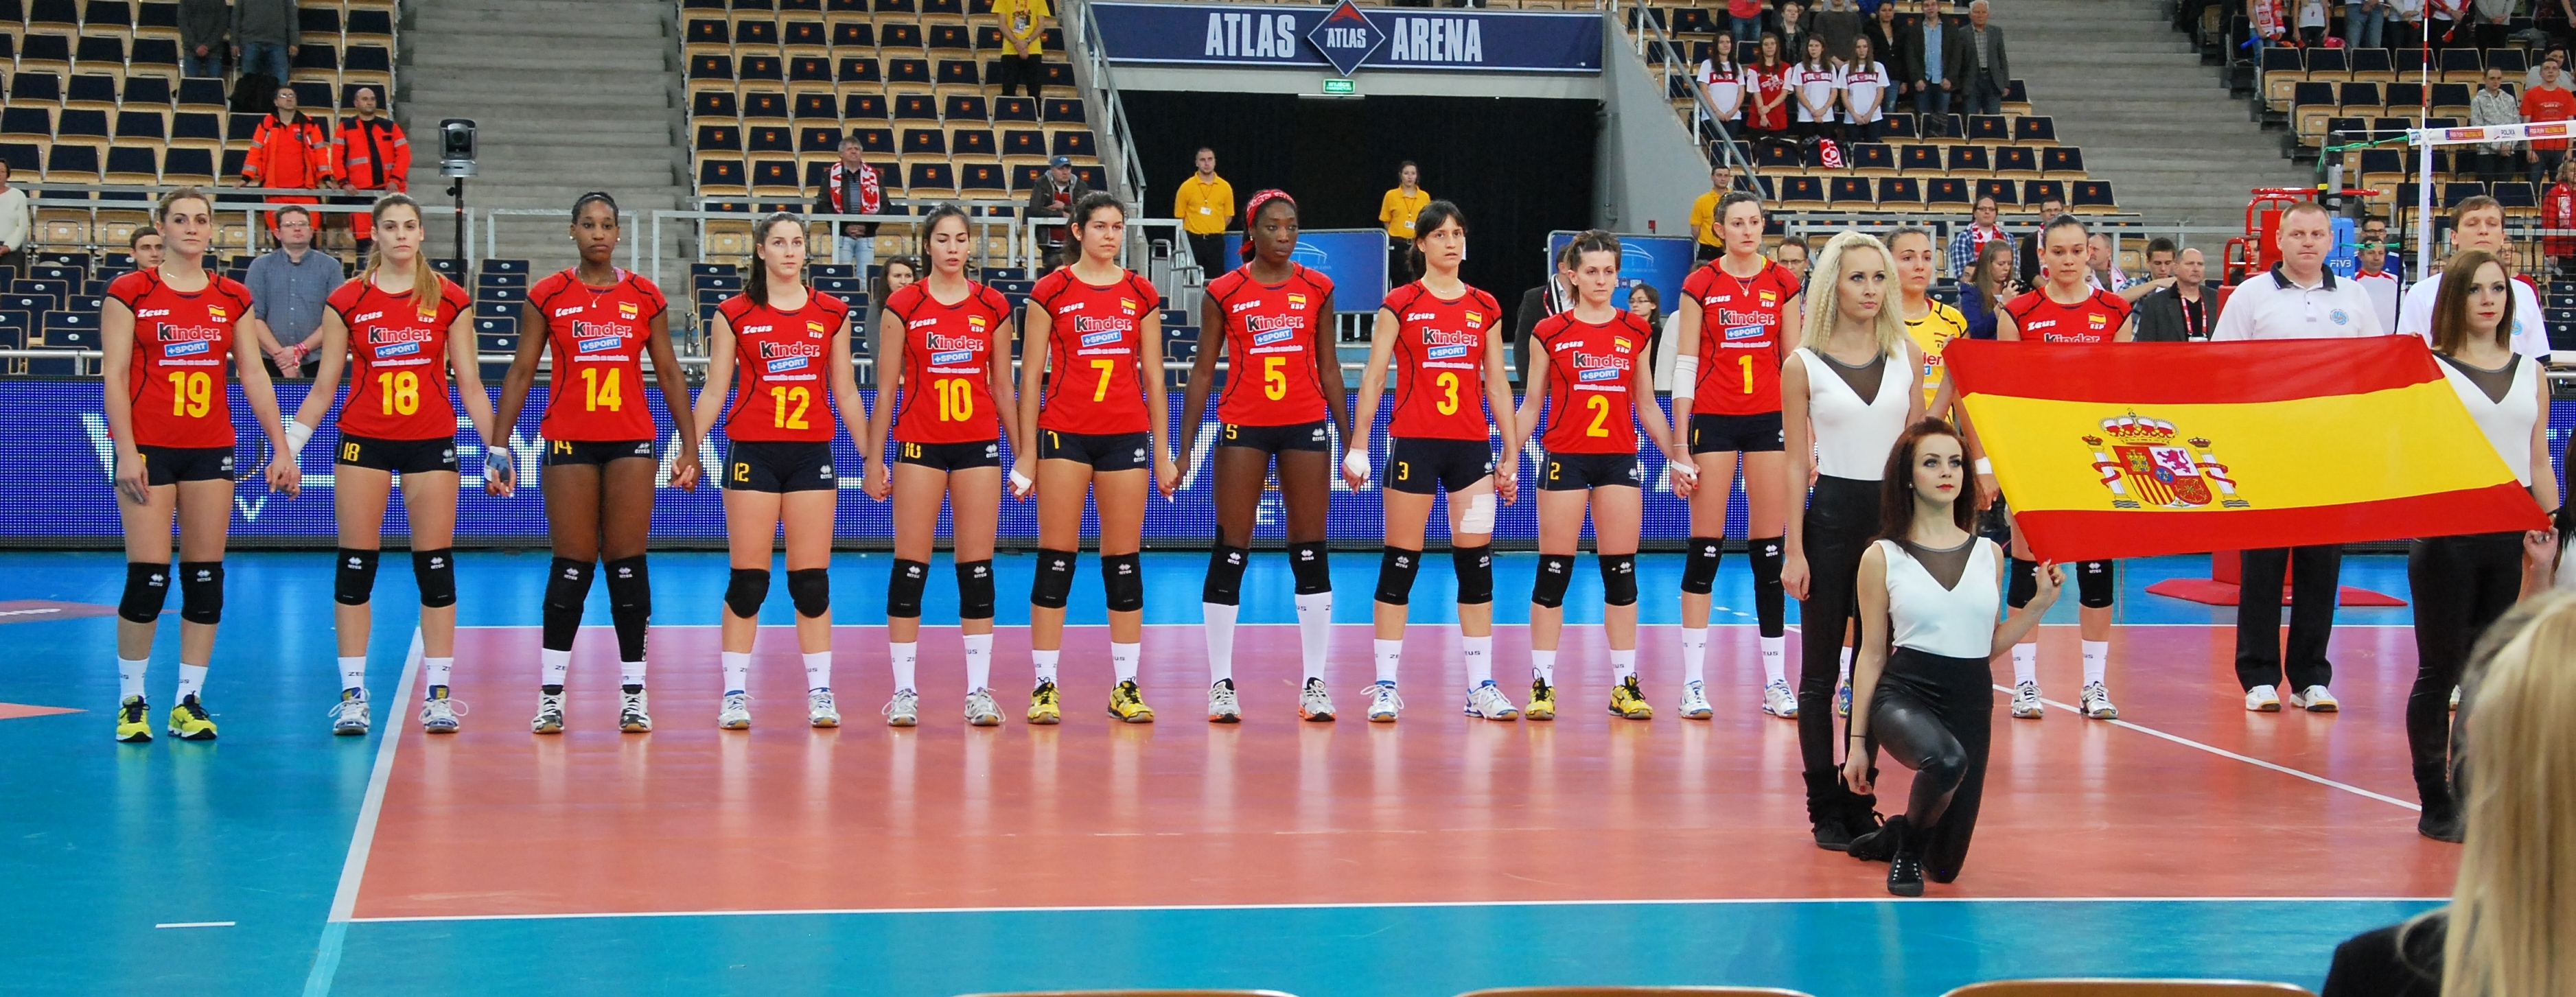 File Spain Volleyball Women National Team 02 Fivb World Championship European Qualification Women Lodz January 2014 Jpg Wikimedia Commons